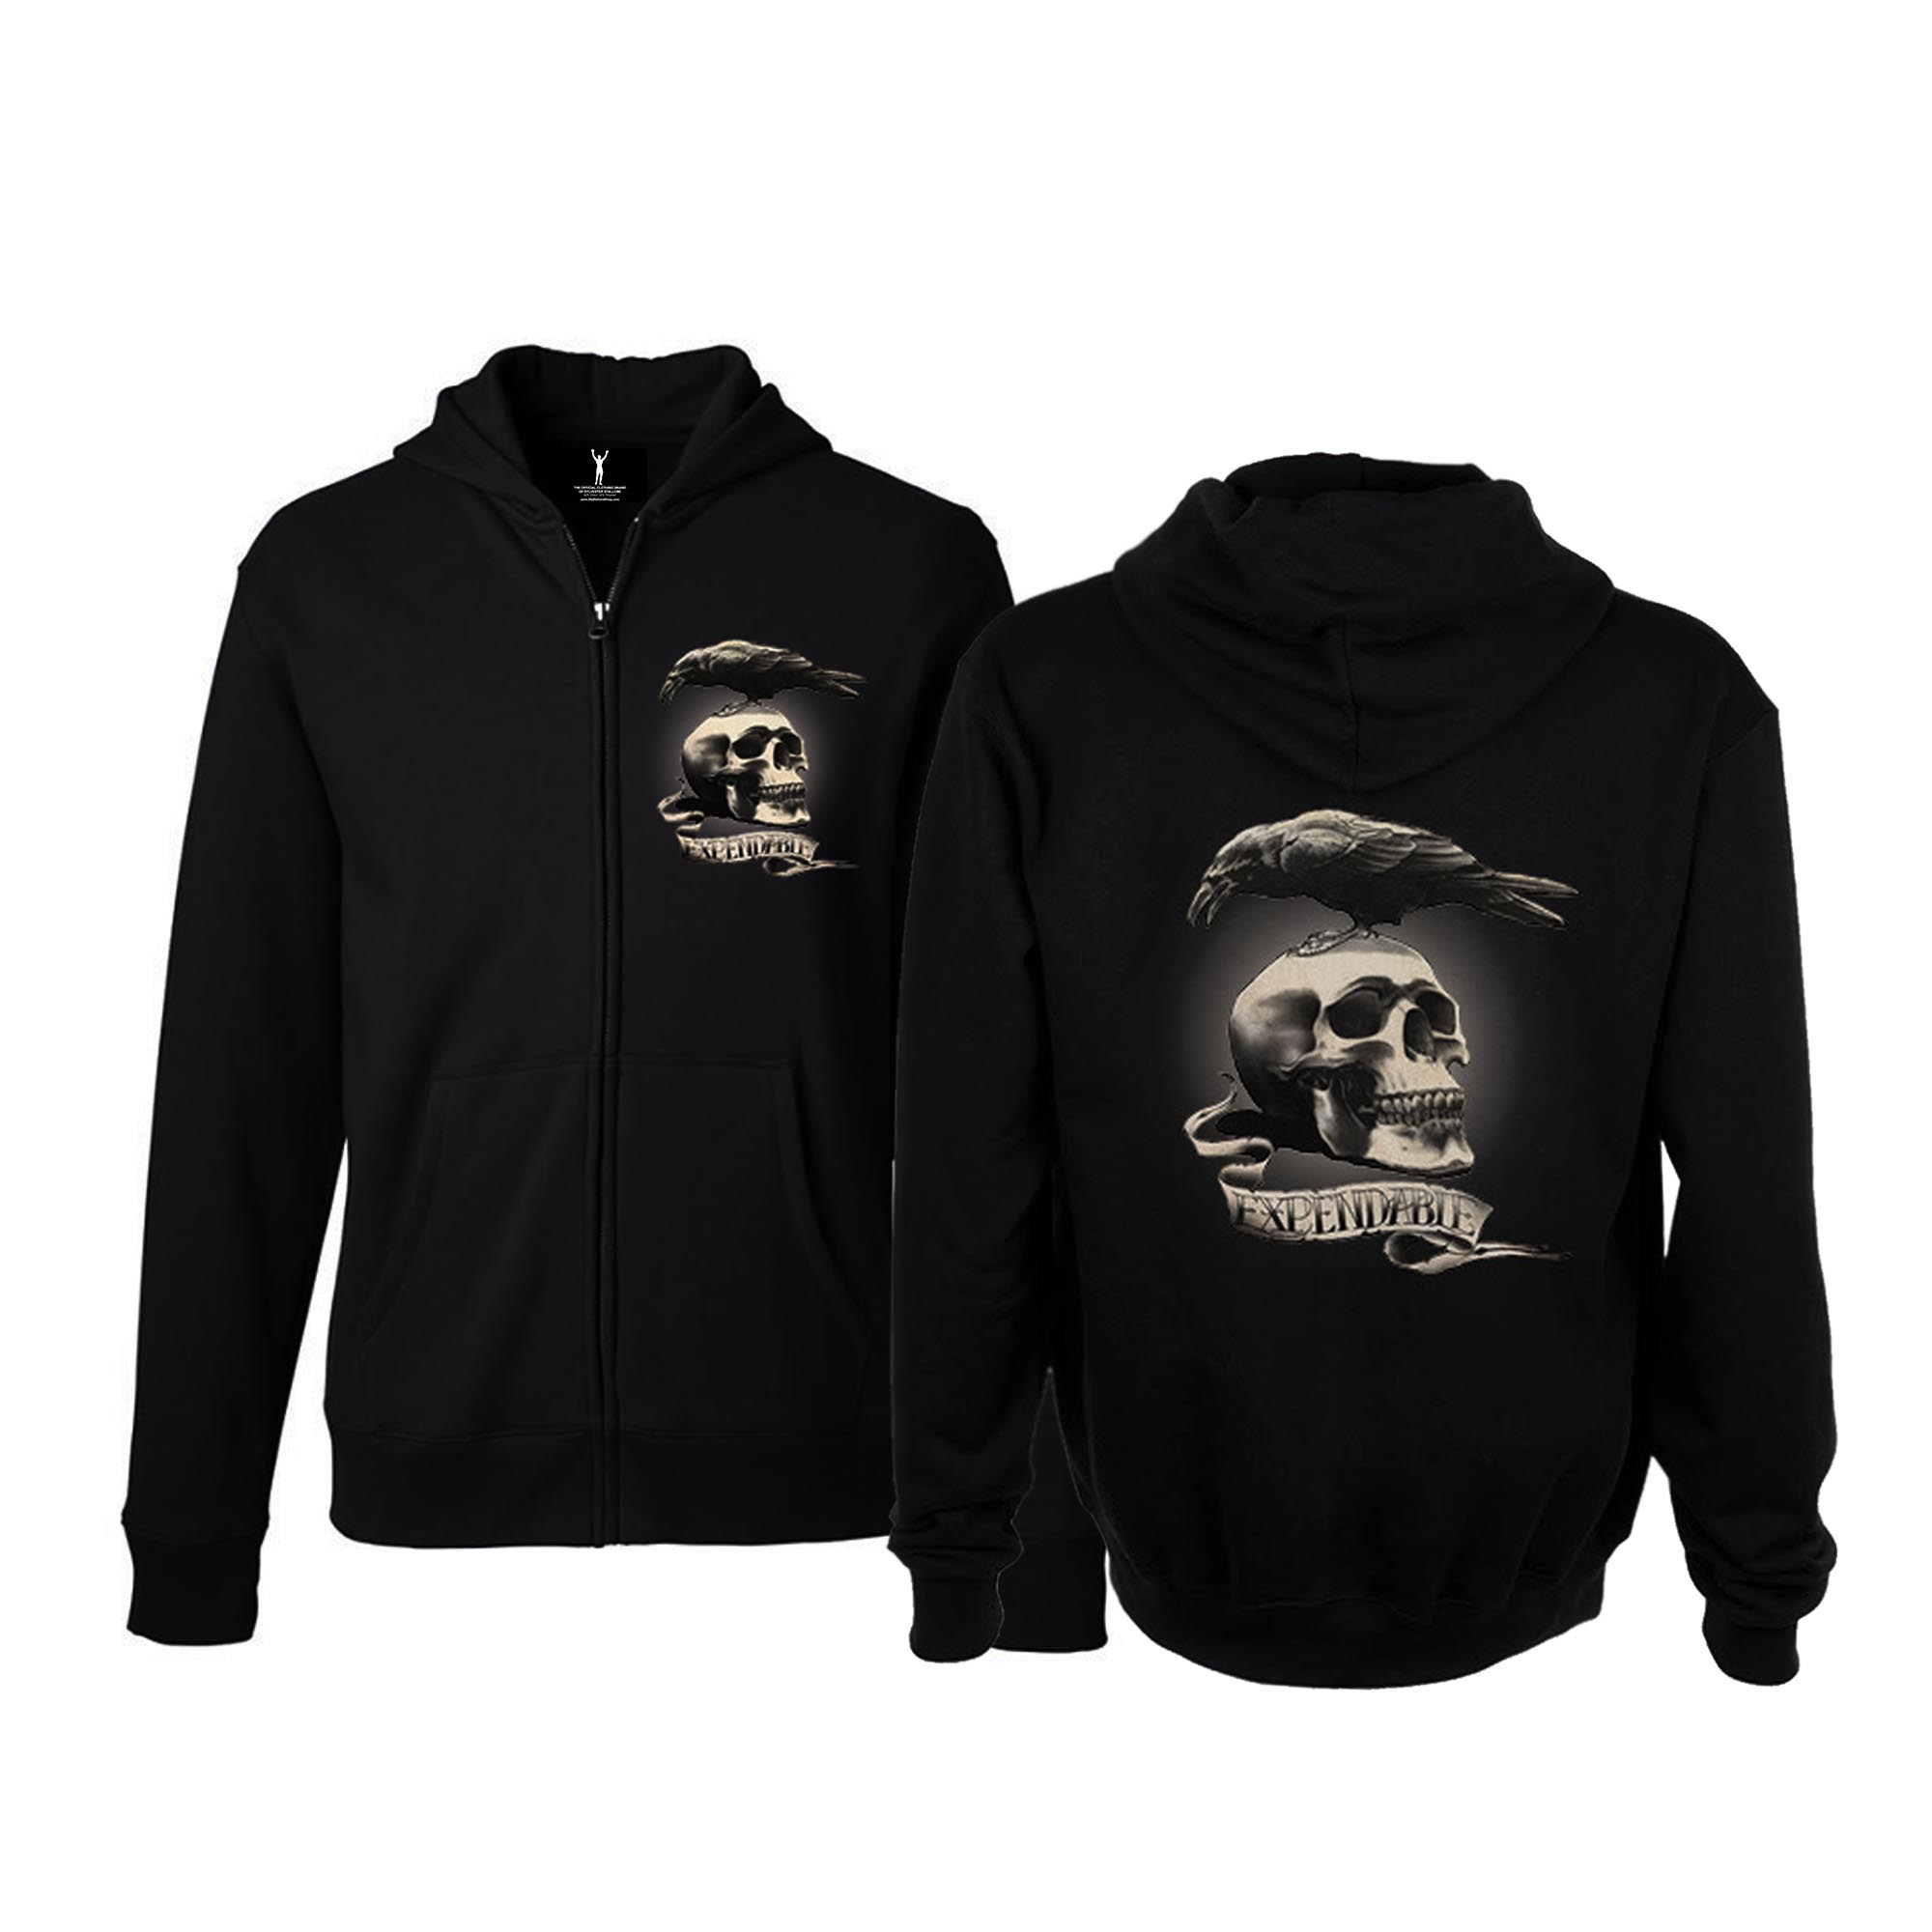 The Expendables Zip Up Hoodie